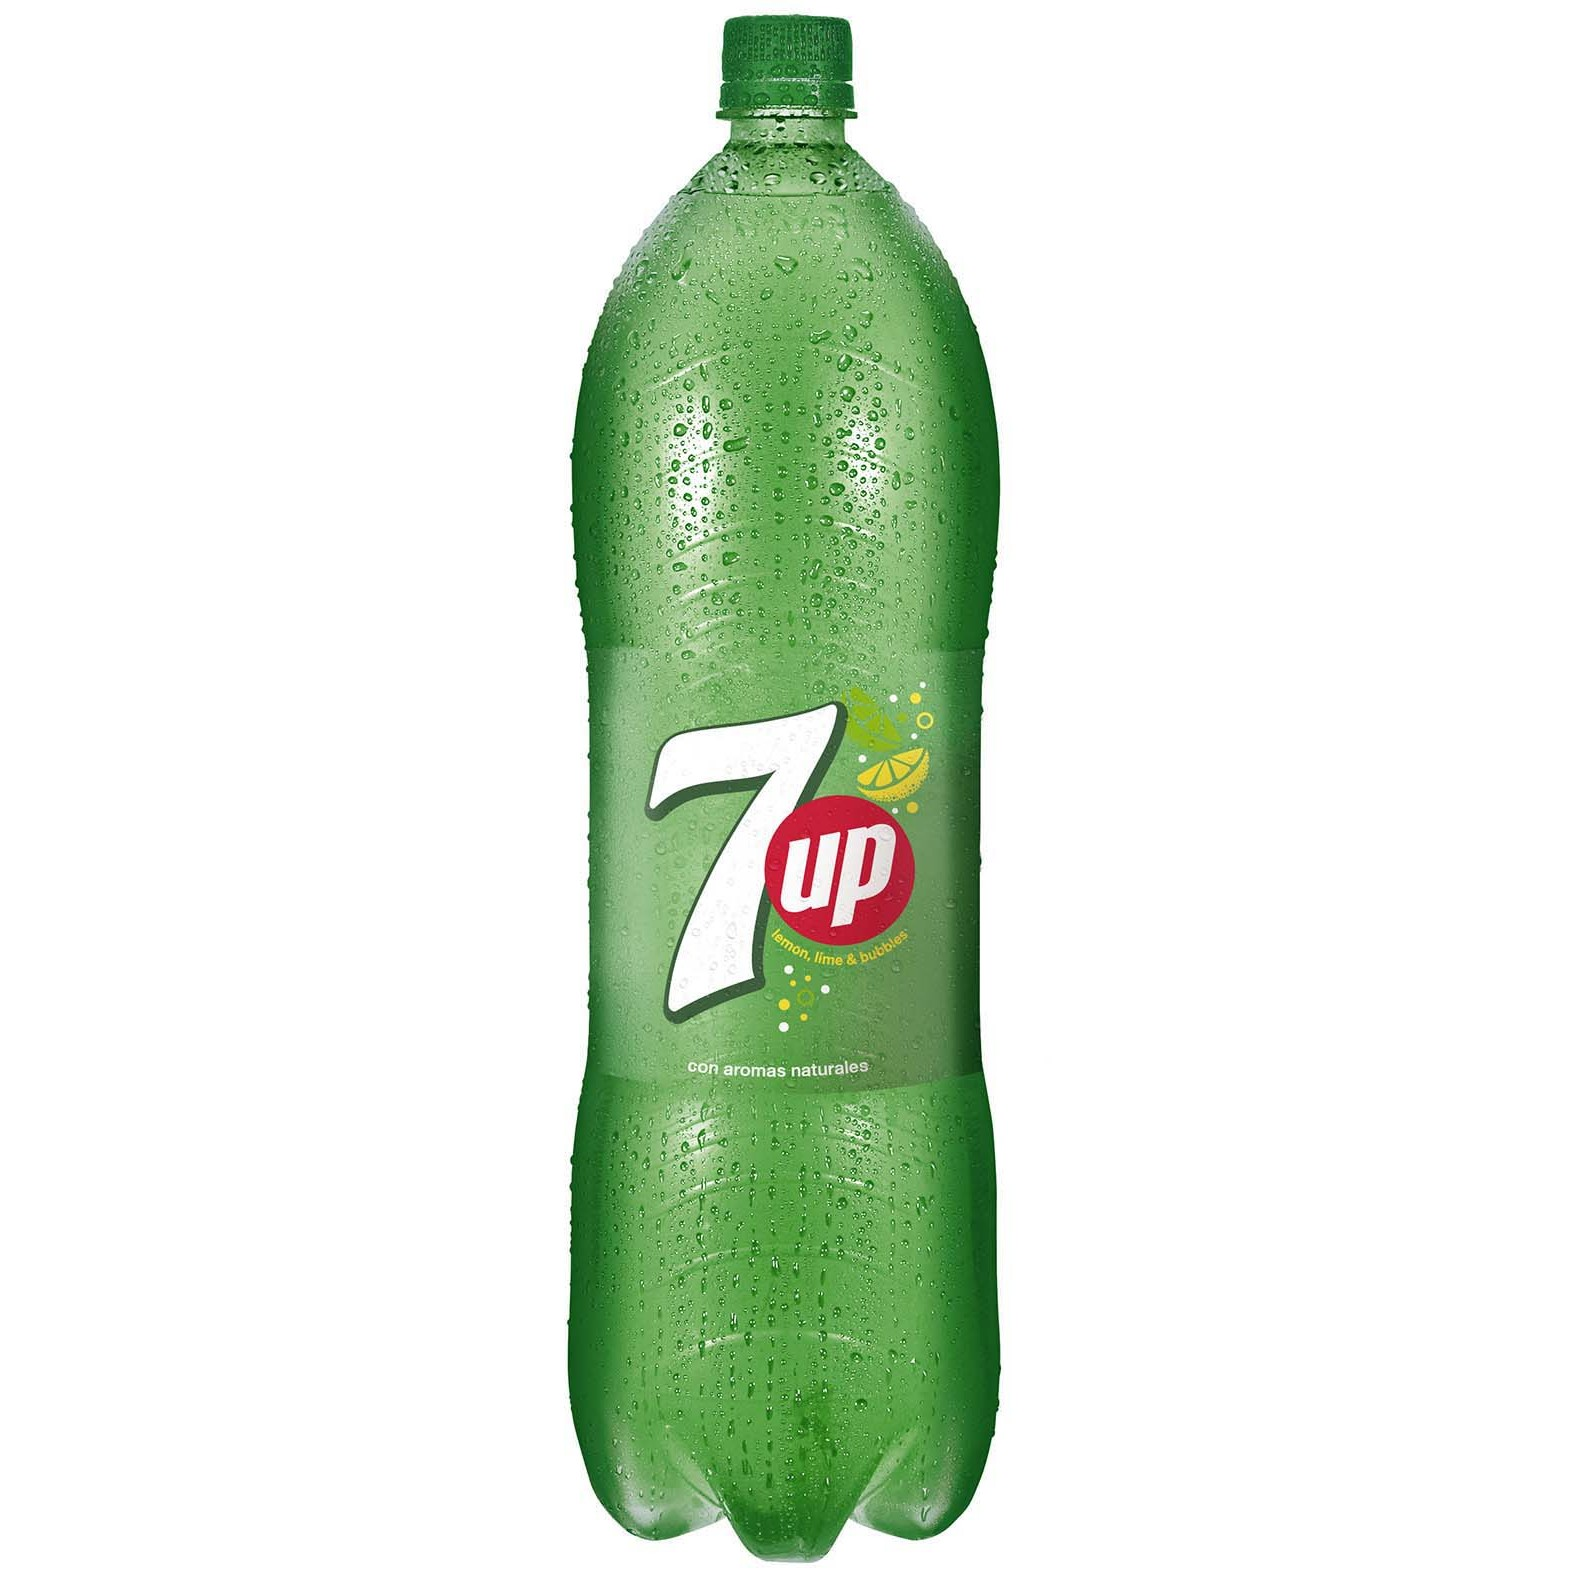 7up 7up regular 2l pet de 2l. en botella